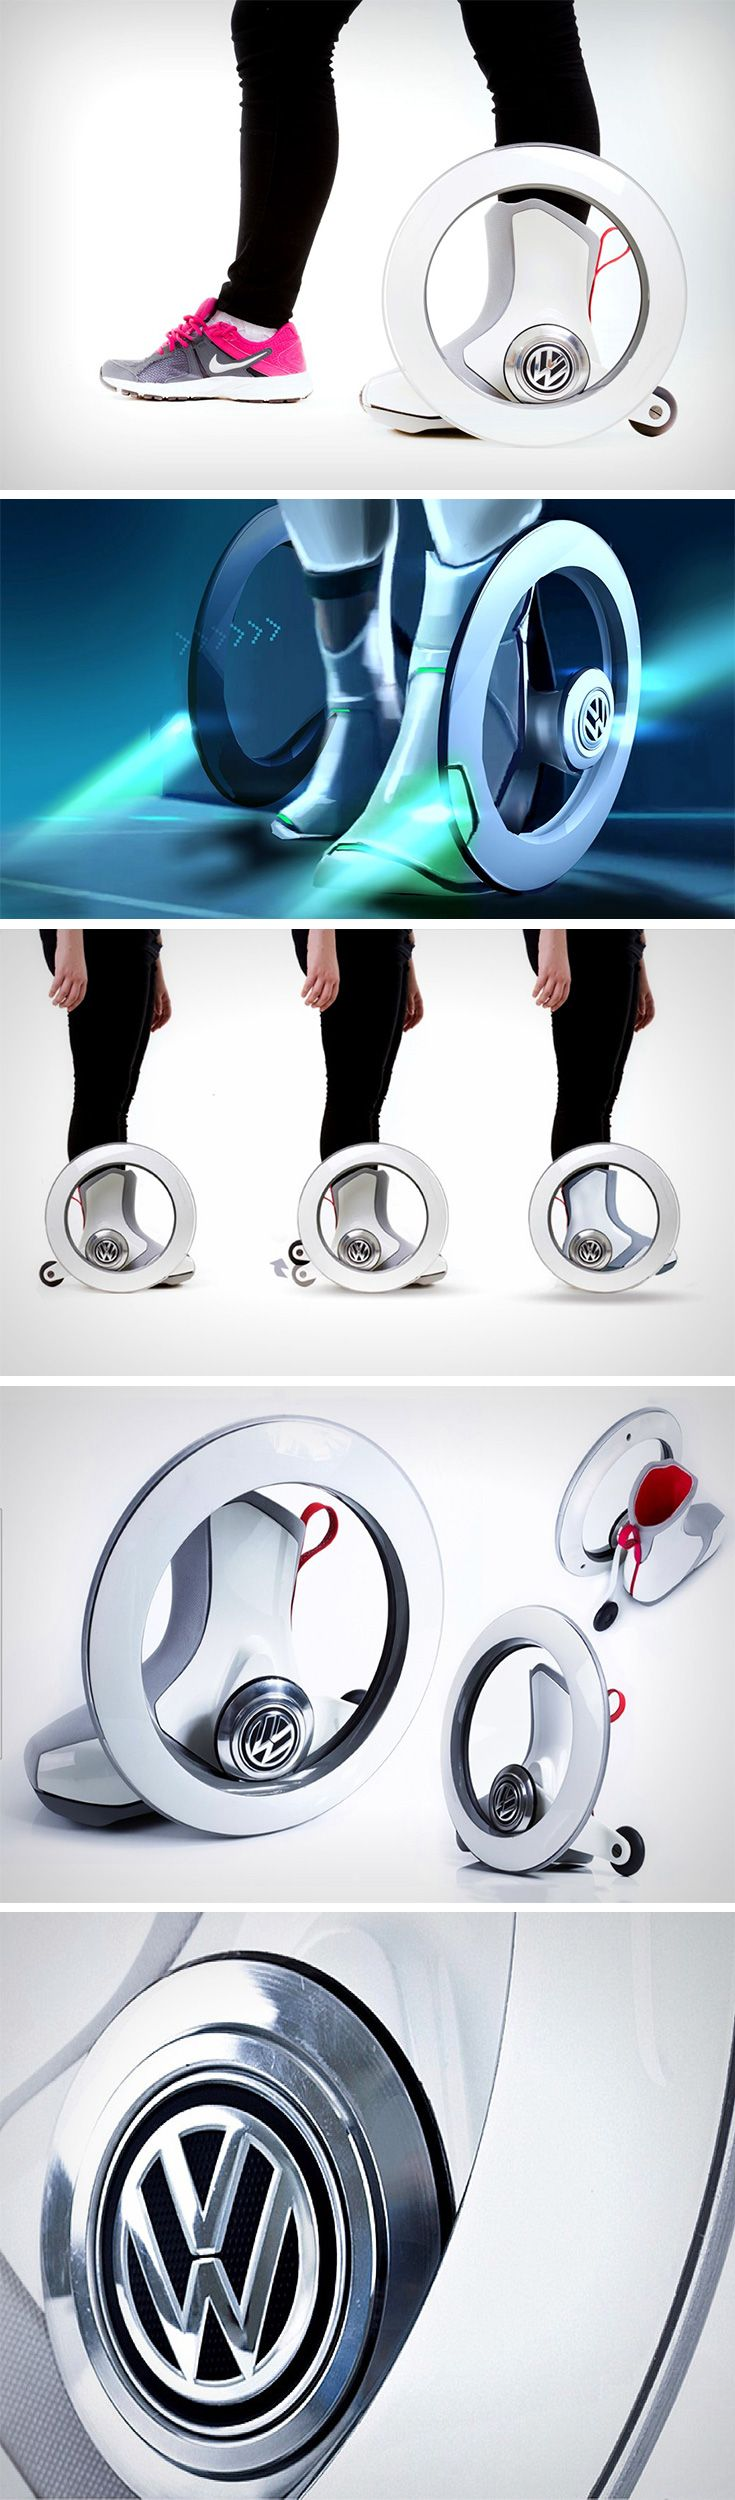 The Volkswagen Roller is a new-age roller skate. It's autonomous, and hands-free. The design comes with two main hubless wheels and two retractable rear wheels. Each roller comes with a hard-plastic shoe that you slide your feet into. http://amzn.to/2pfvy http://amzn.to/2rsjy6P